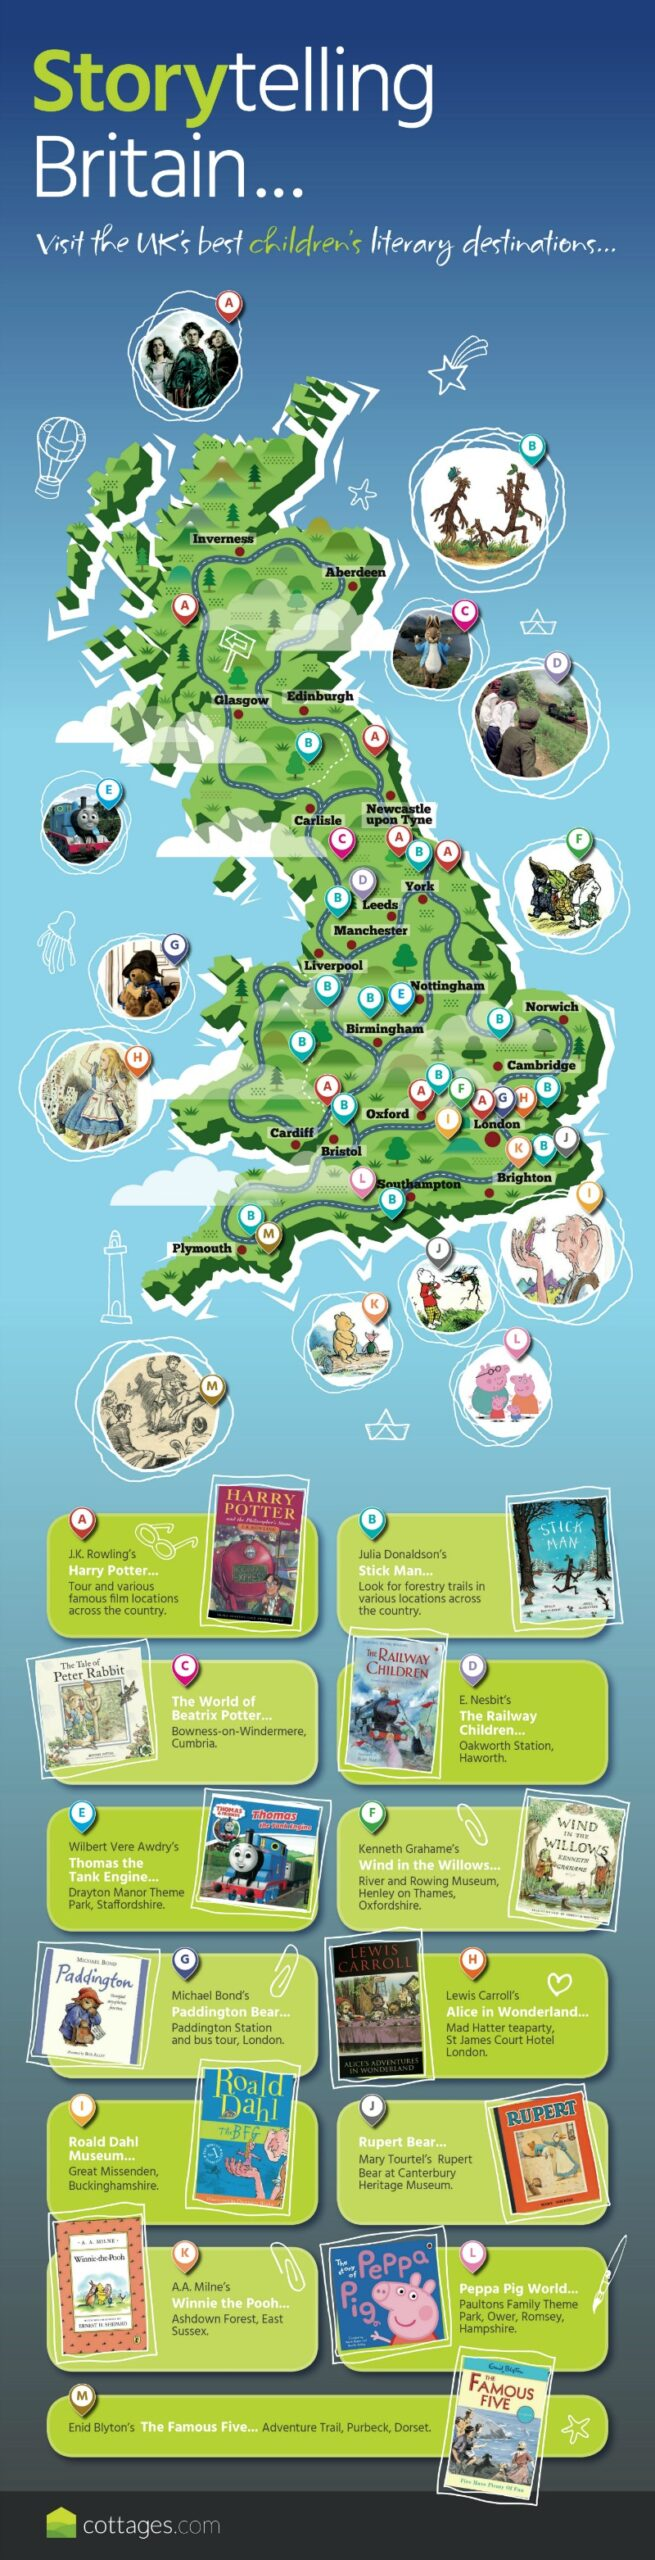 UK holidays inspired by books - book a cottage and explore the settings of some of your most treasured childhood stories